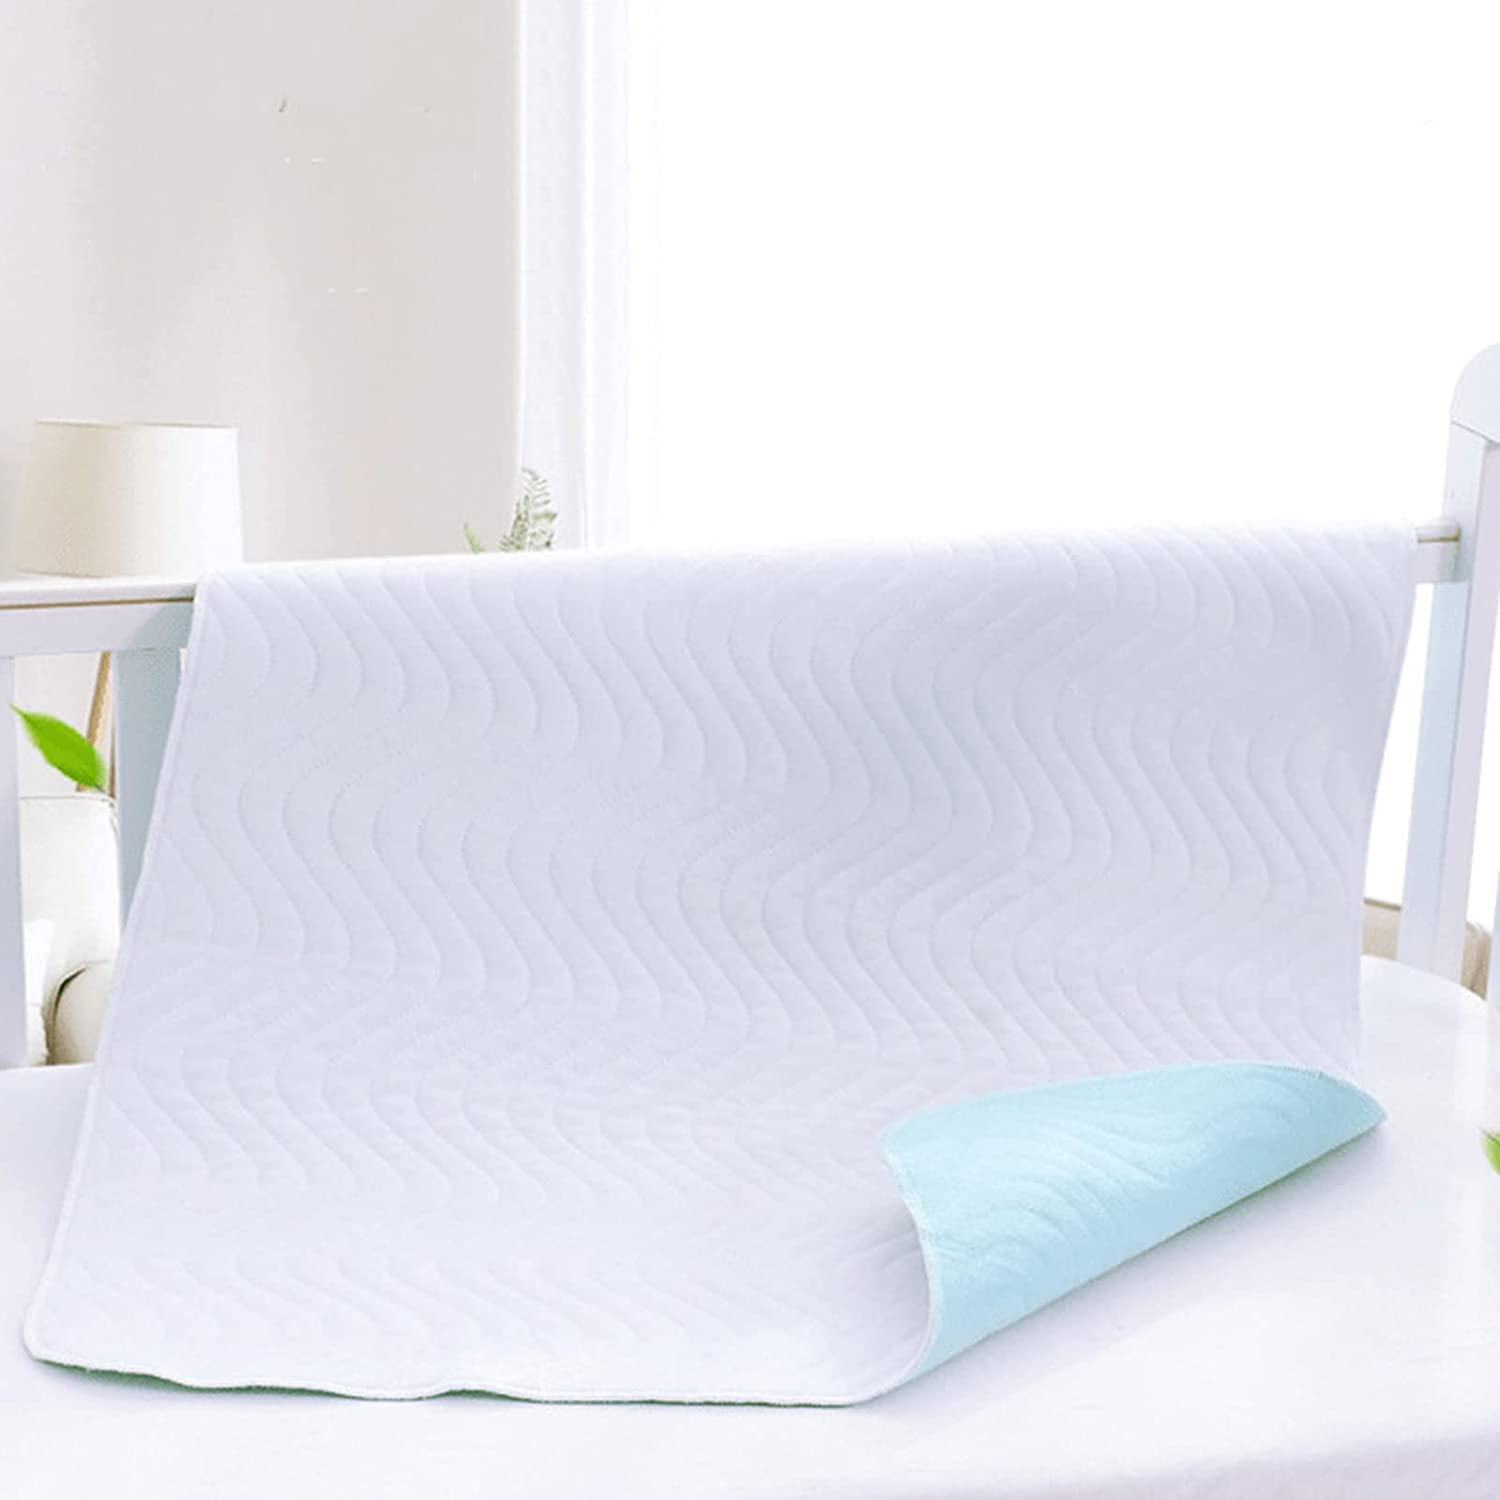 NXM Washable Bed Pads Fixed price for sale Reusable Pad Ranking TOP13 for Incontinence